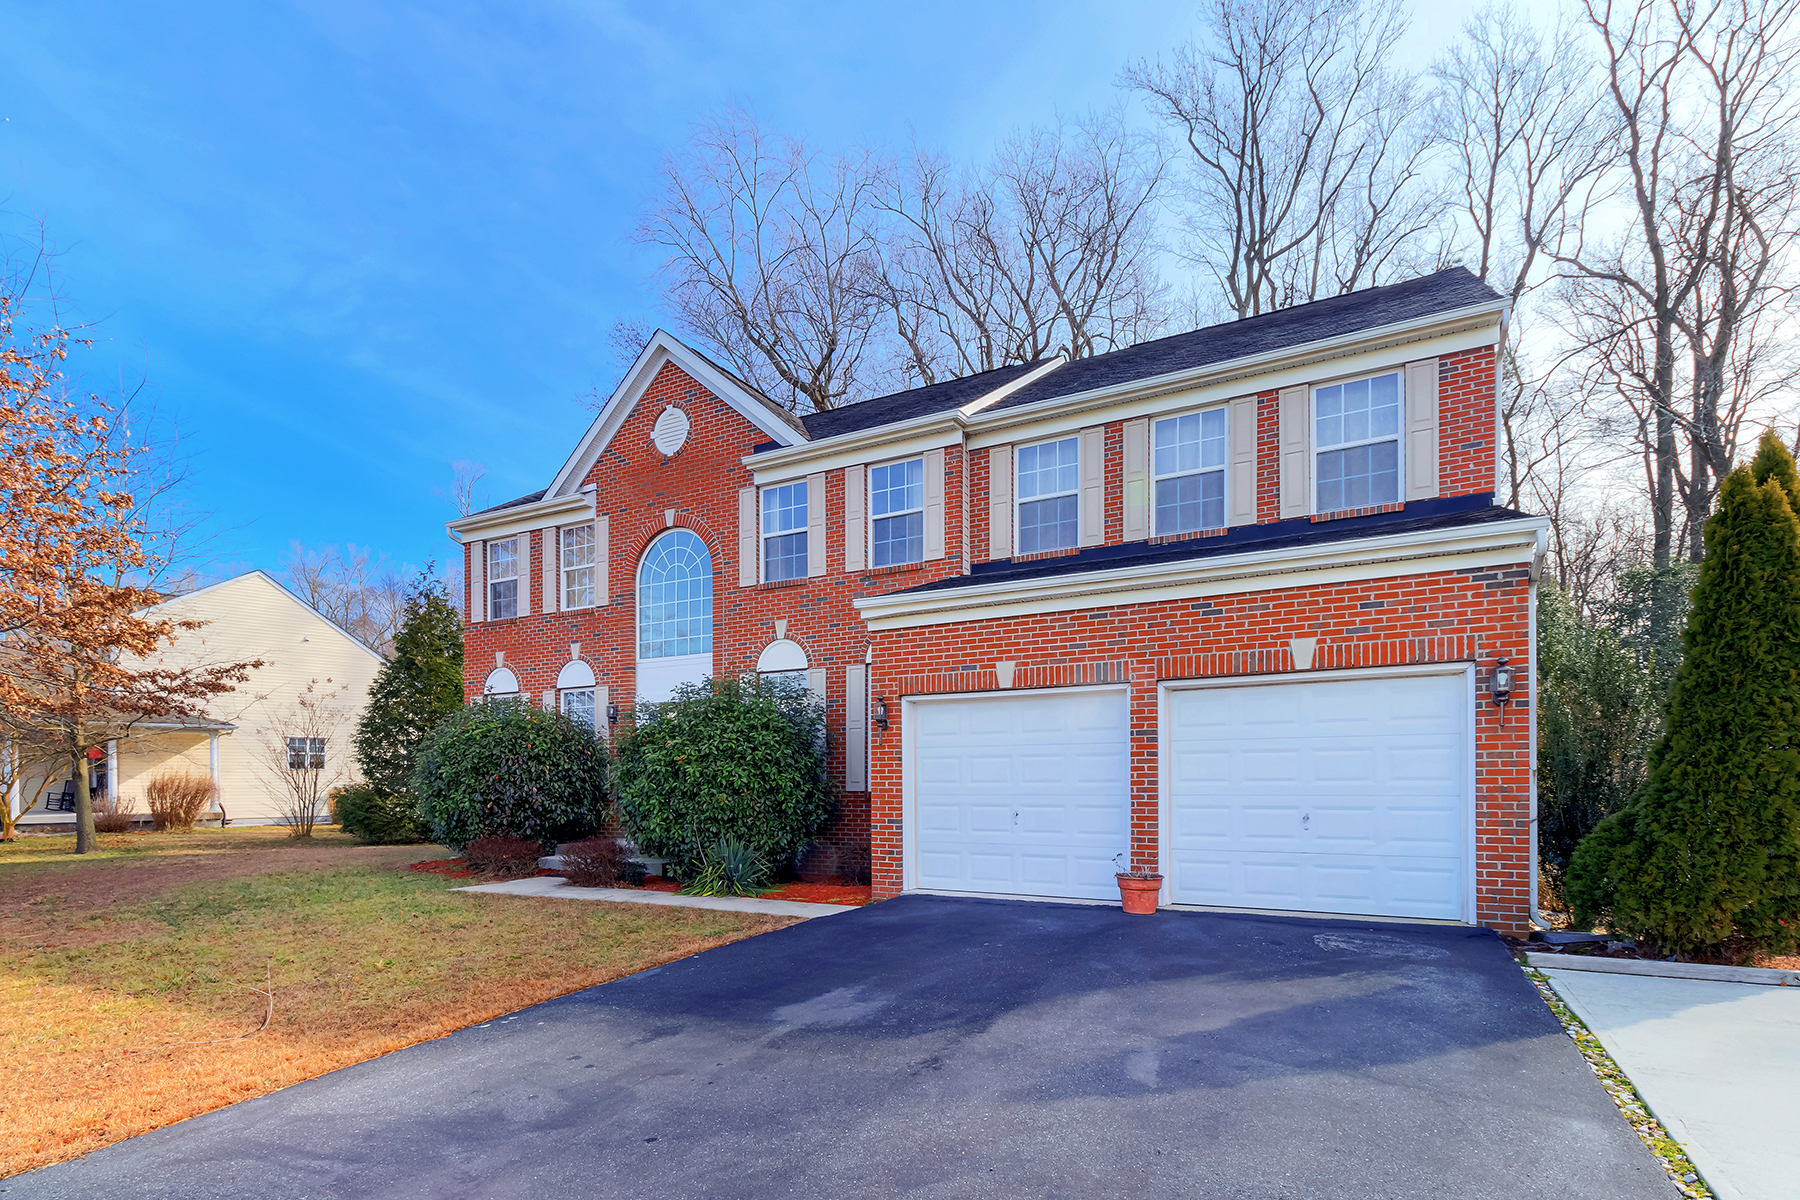 Single Family Homes for Sale at 30 Clover Drive Georgetown, Delaware 19947 United States